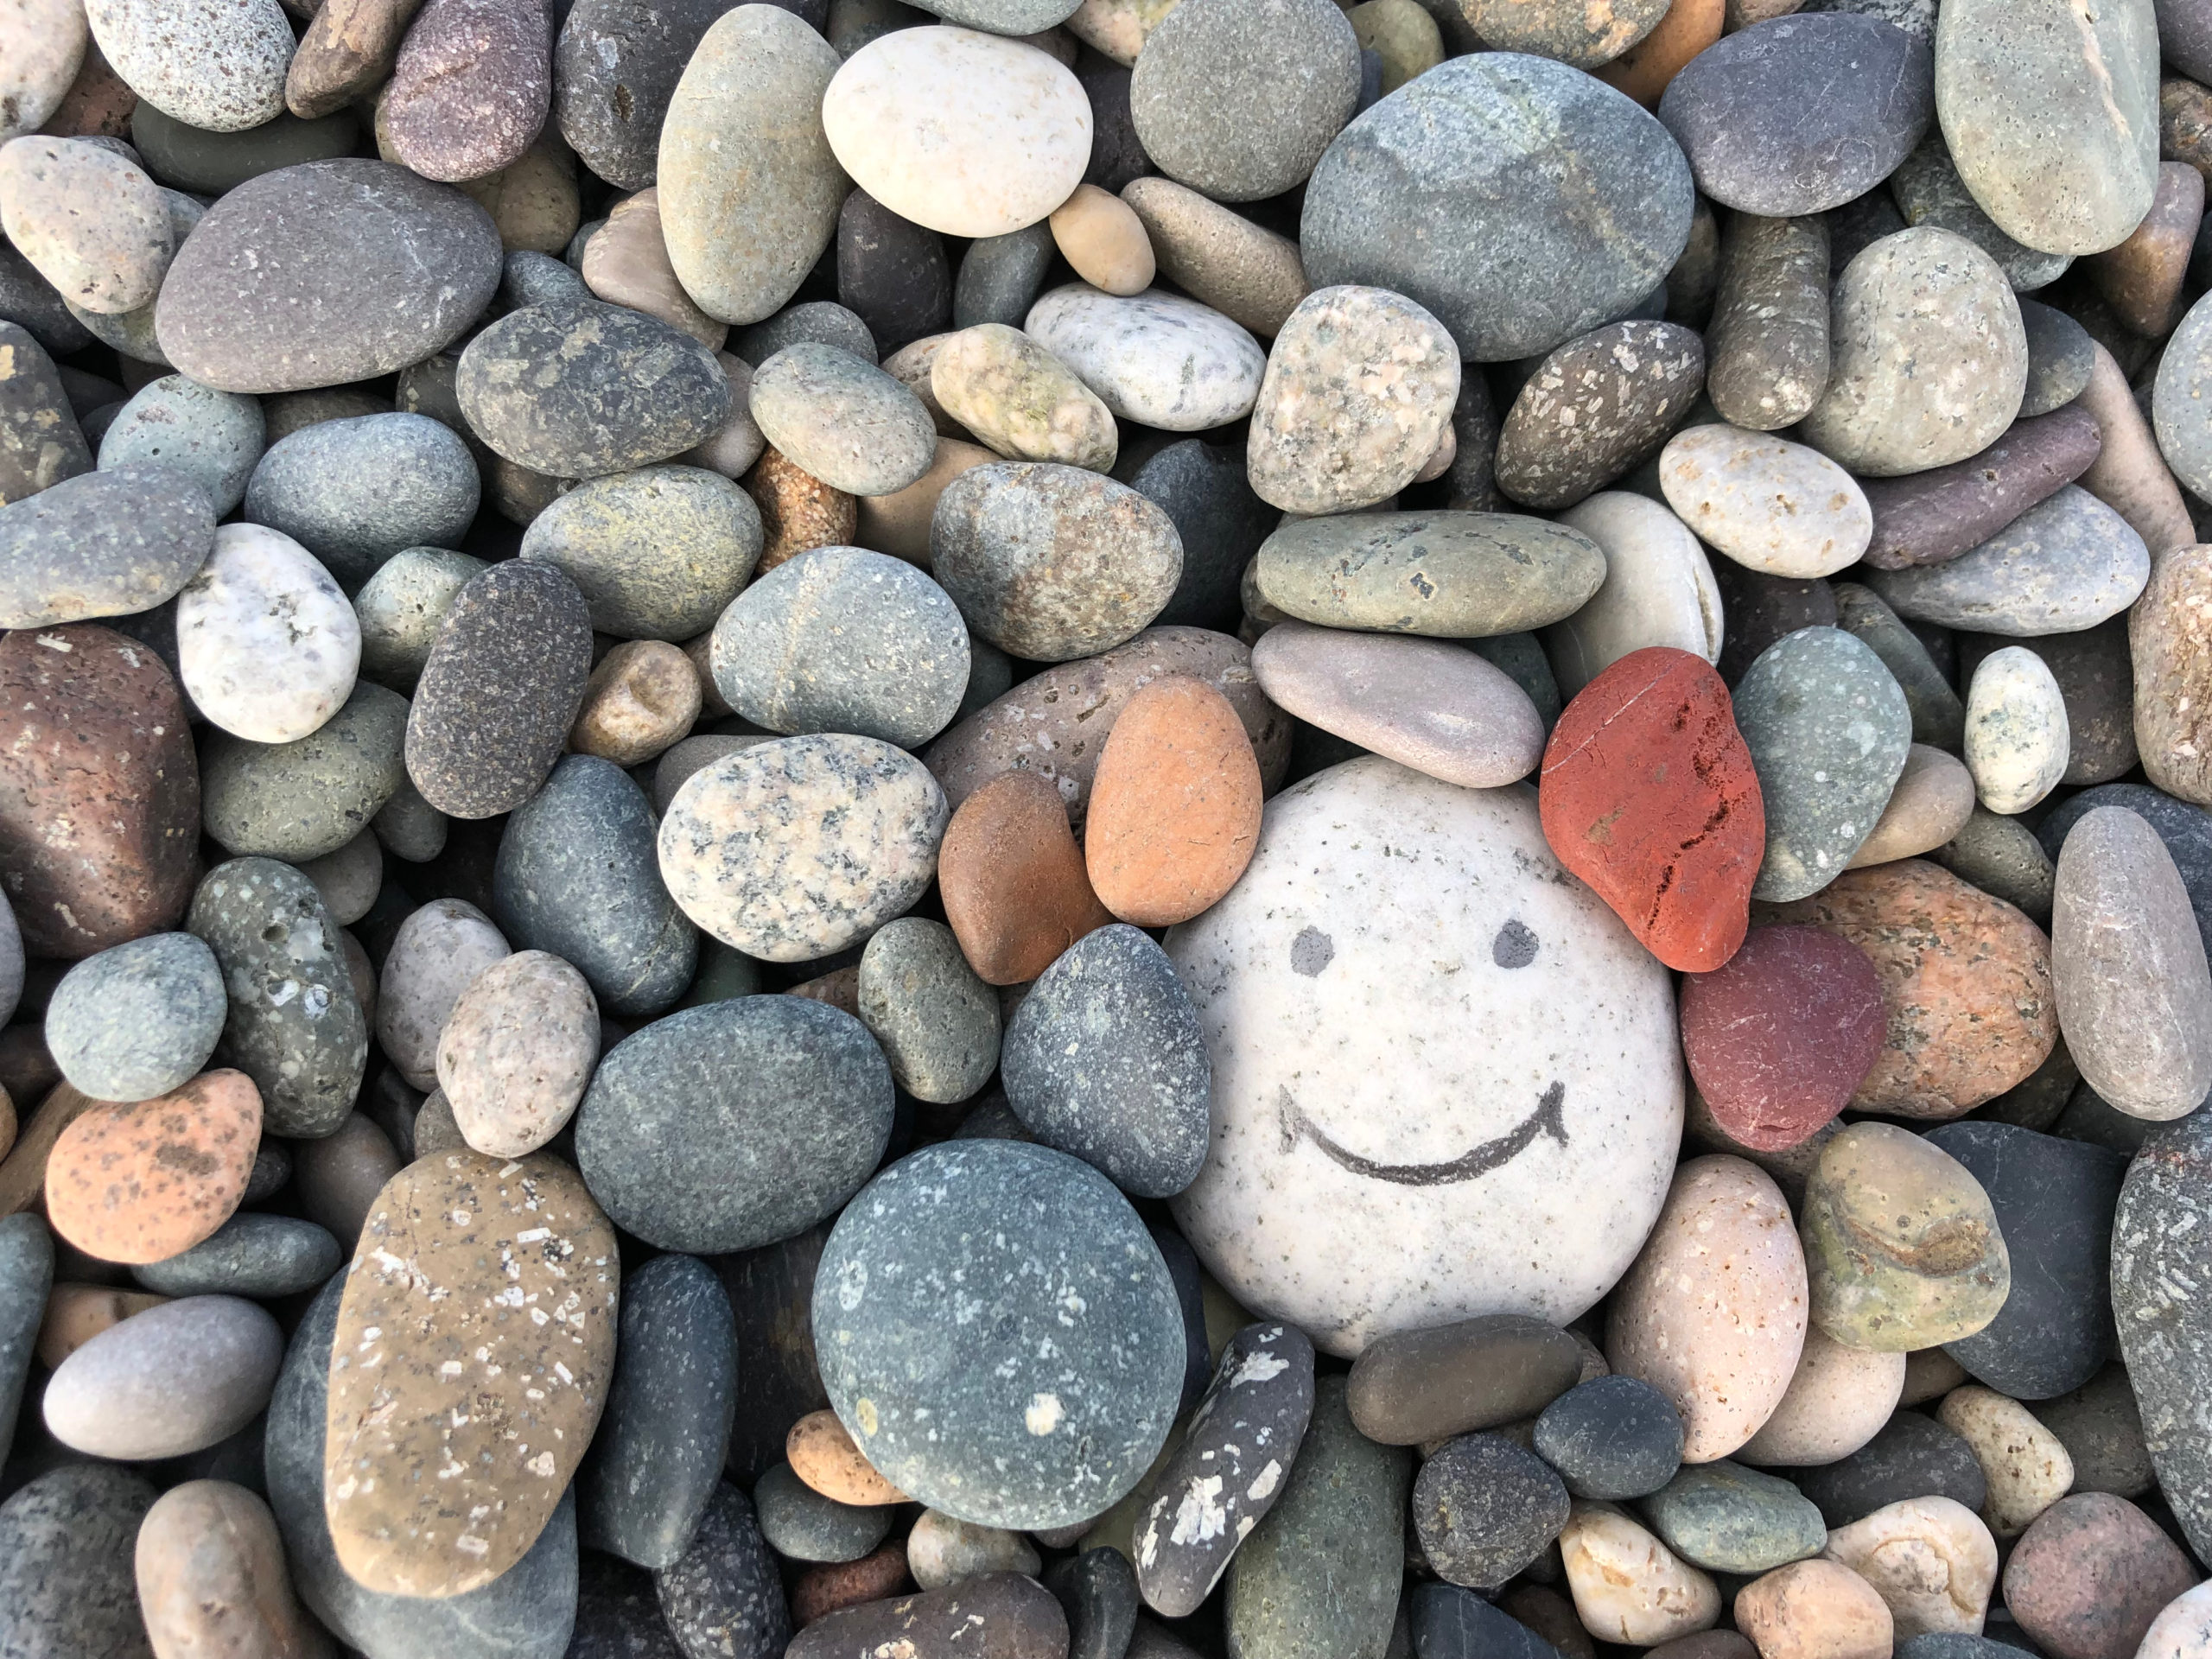 COVID 19: Why should we remain optimistic?